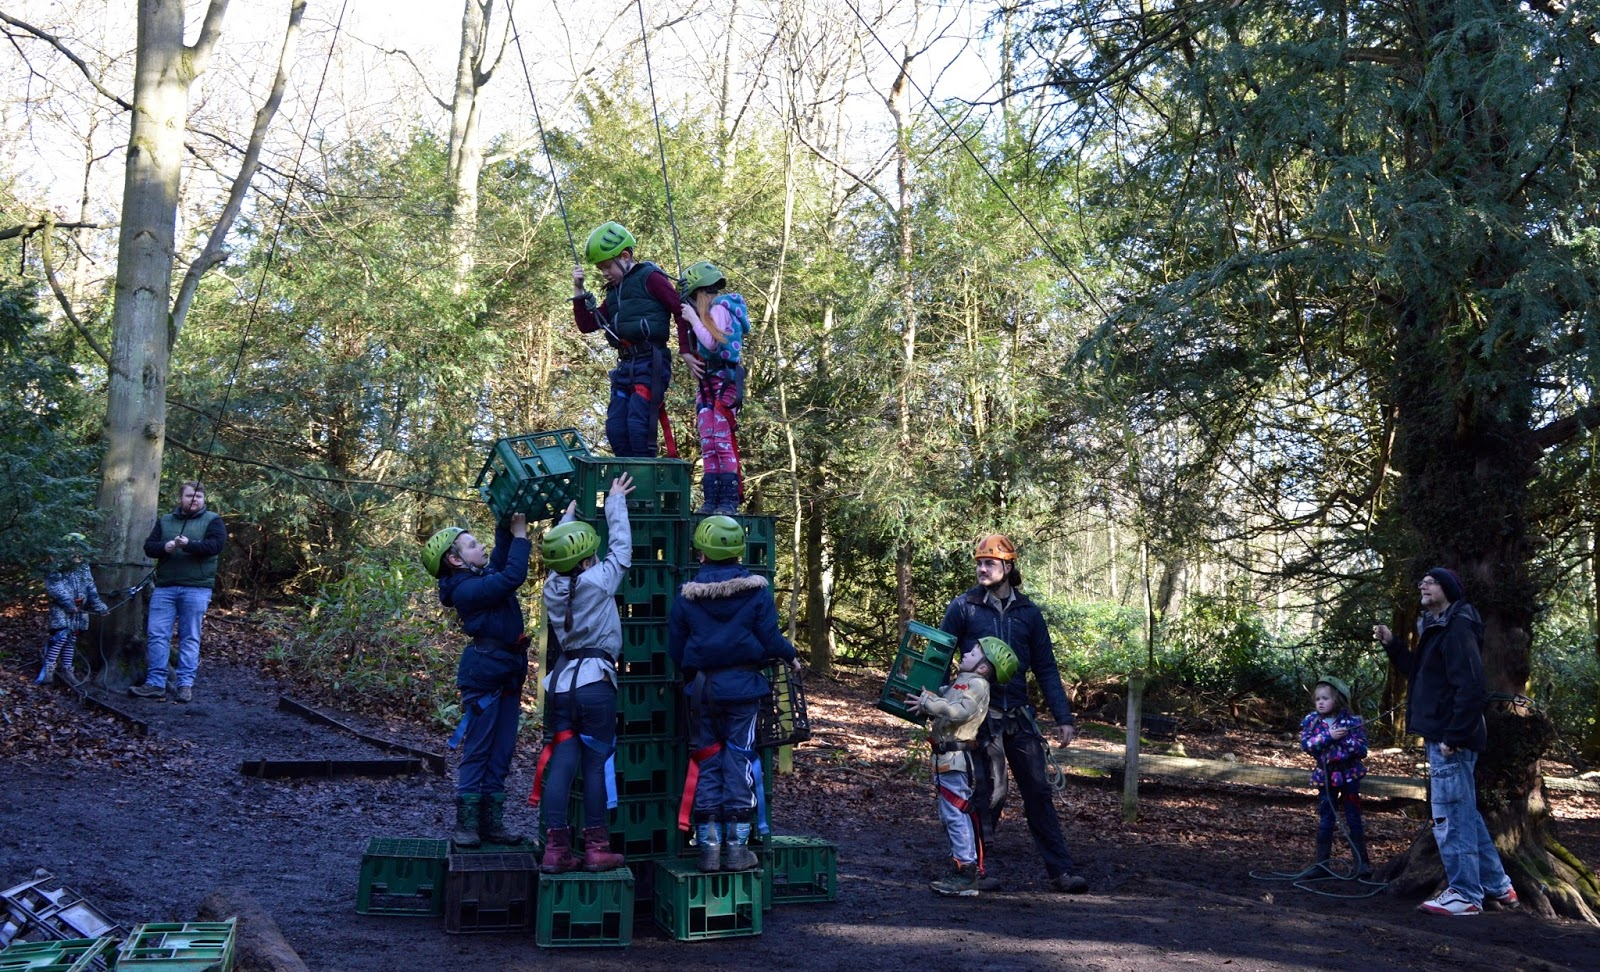 Beamish Wild | School Holiday Club & Activities in County Durham | North East England - crate stack team work